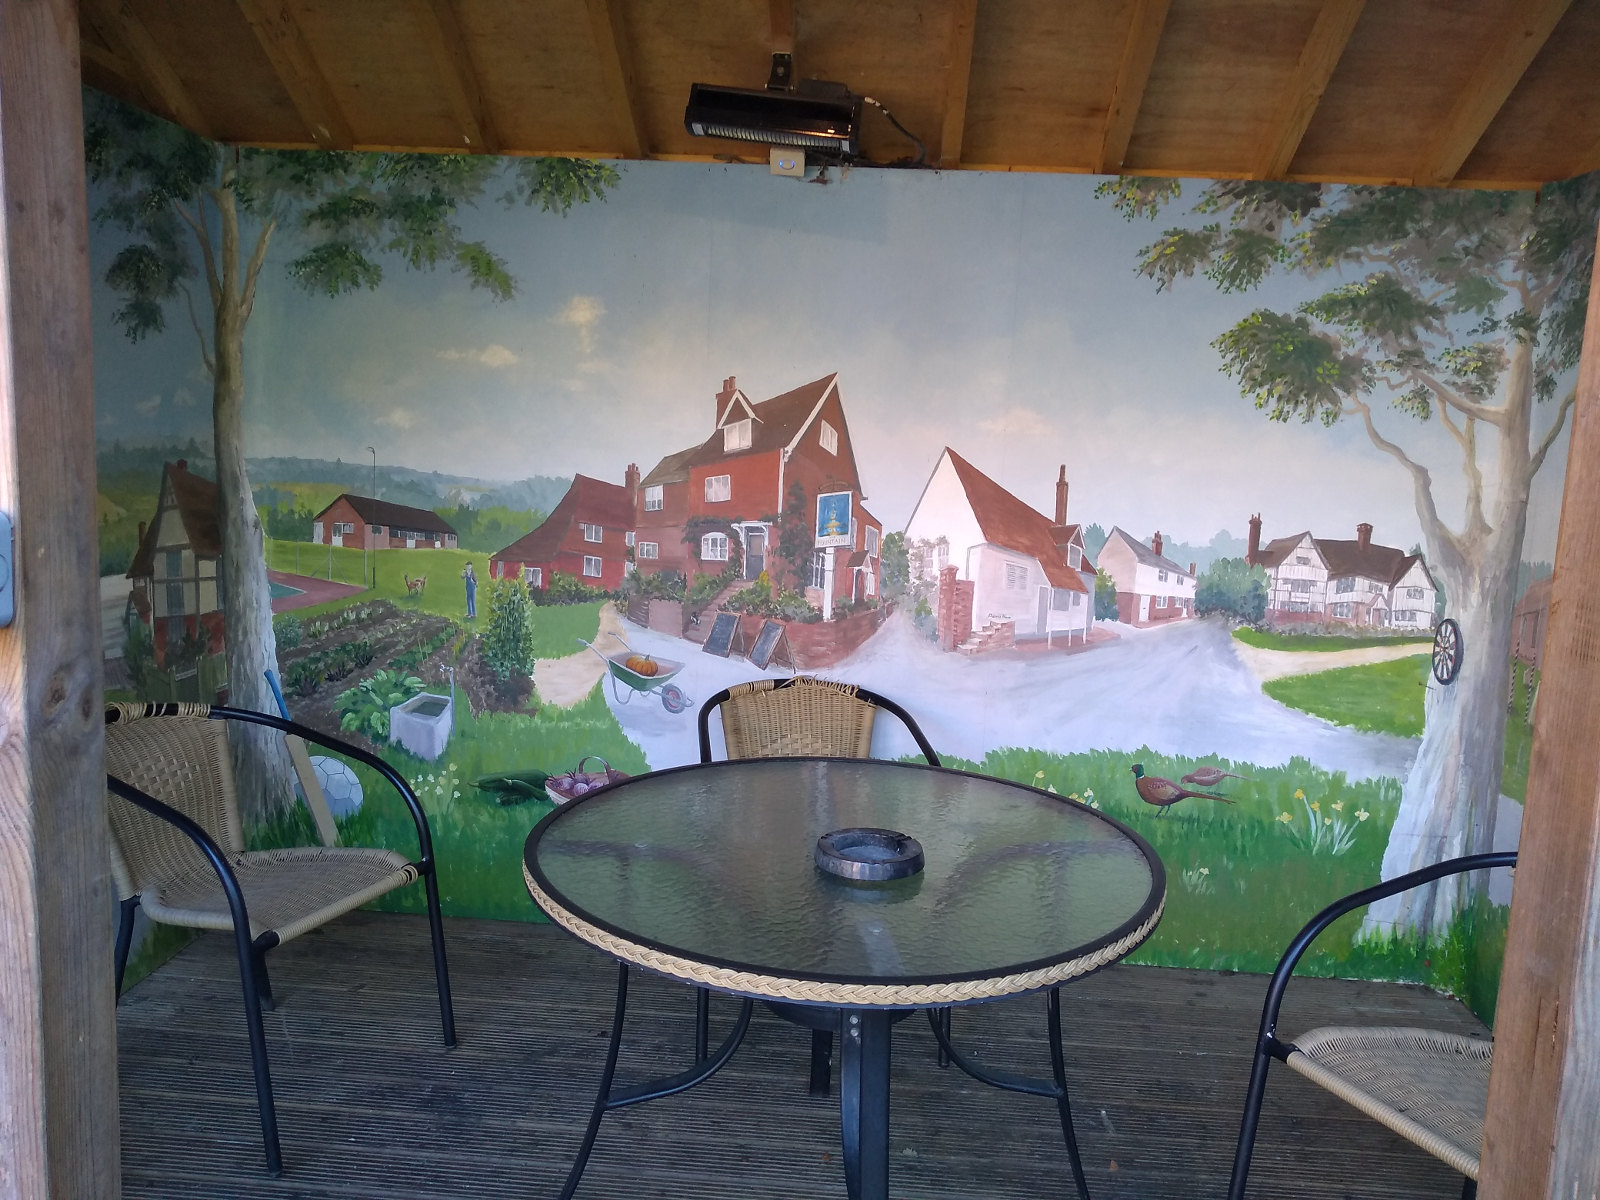 The Fountain smokery with mural